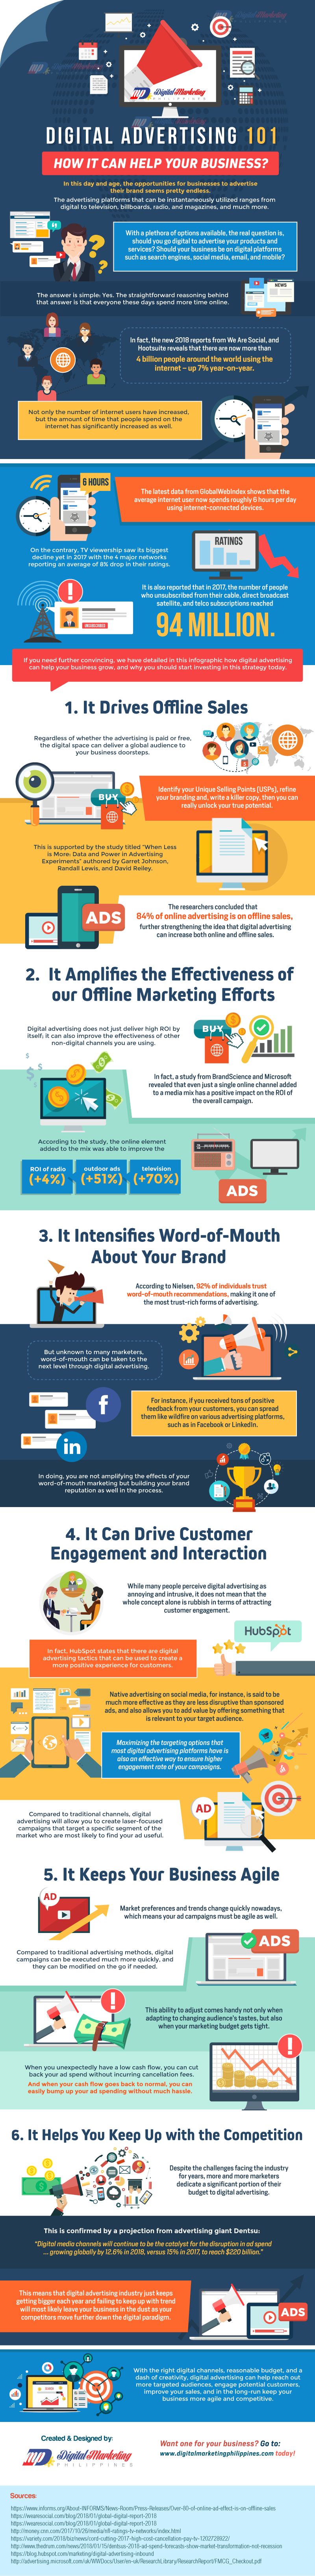 Digital Advertising 101 – How It Can Help Your Business? [Infographic]